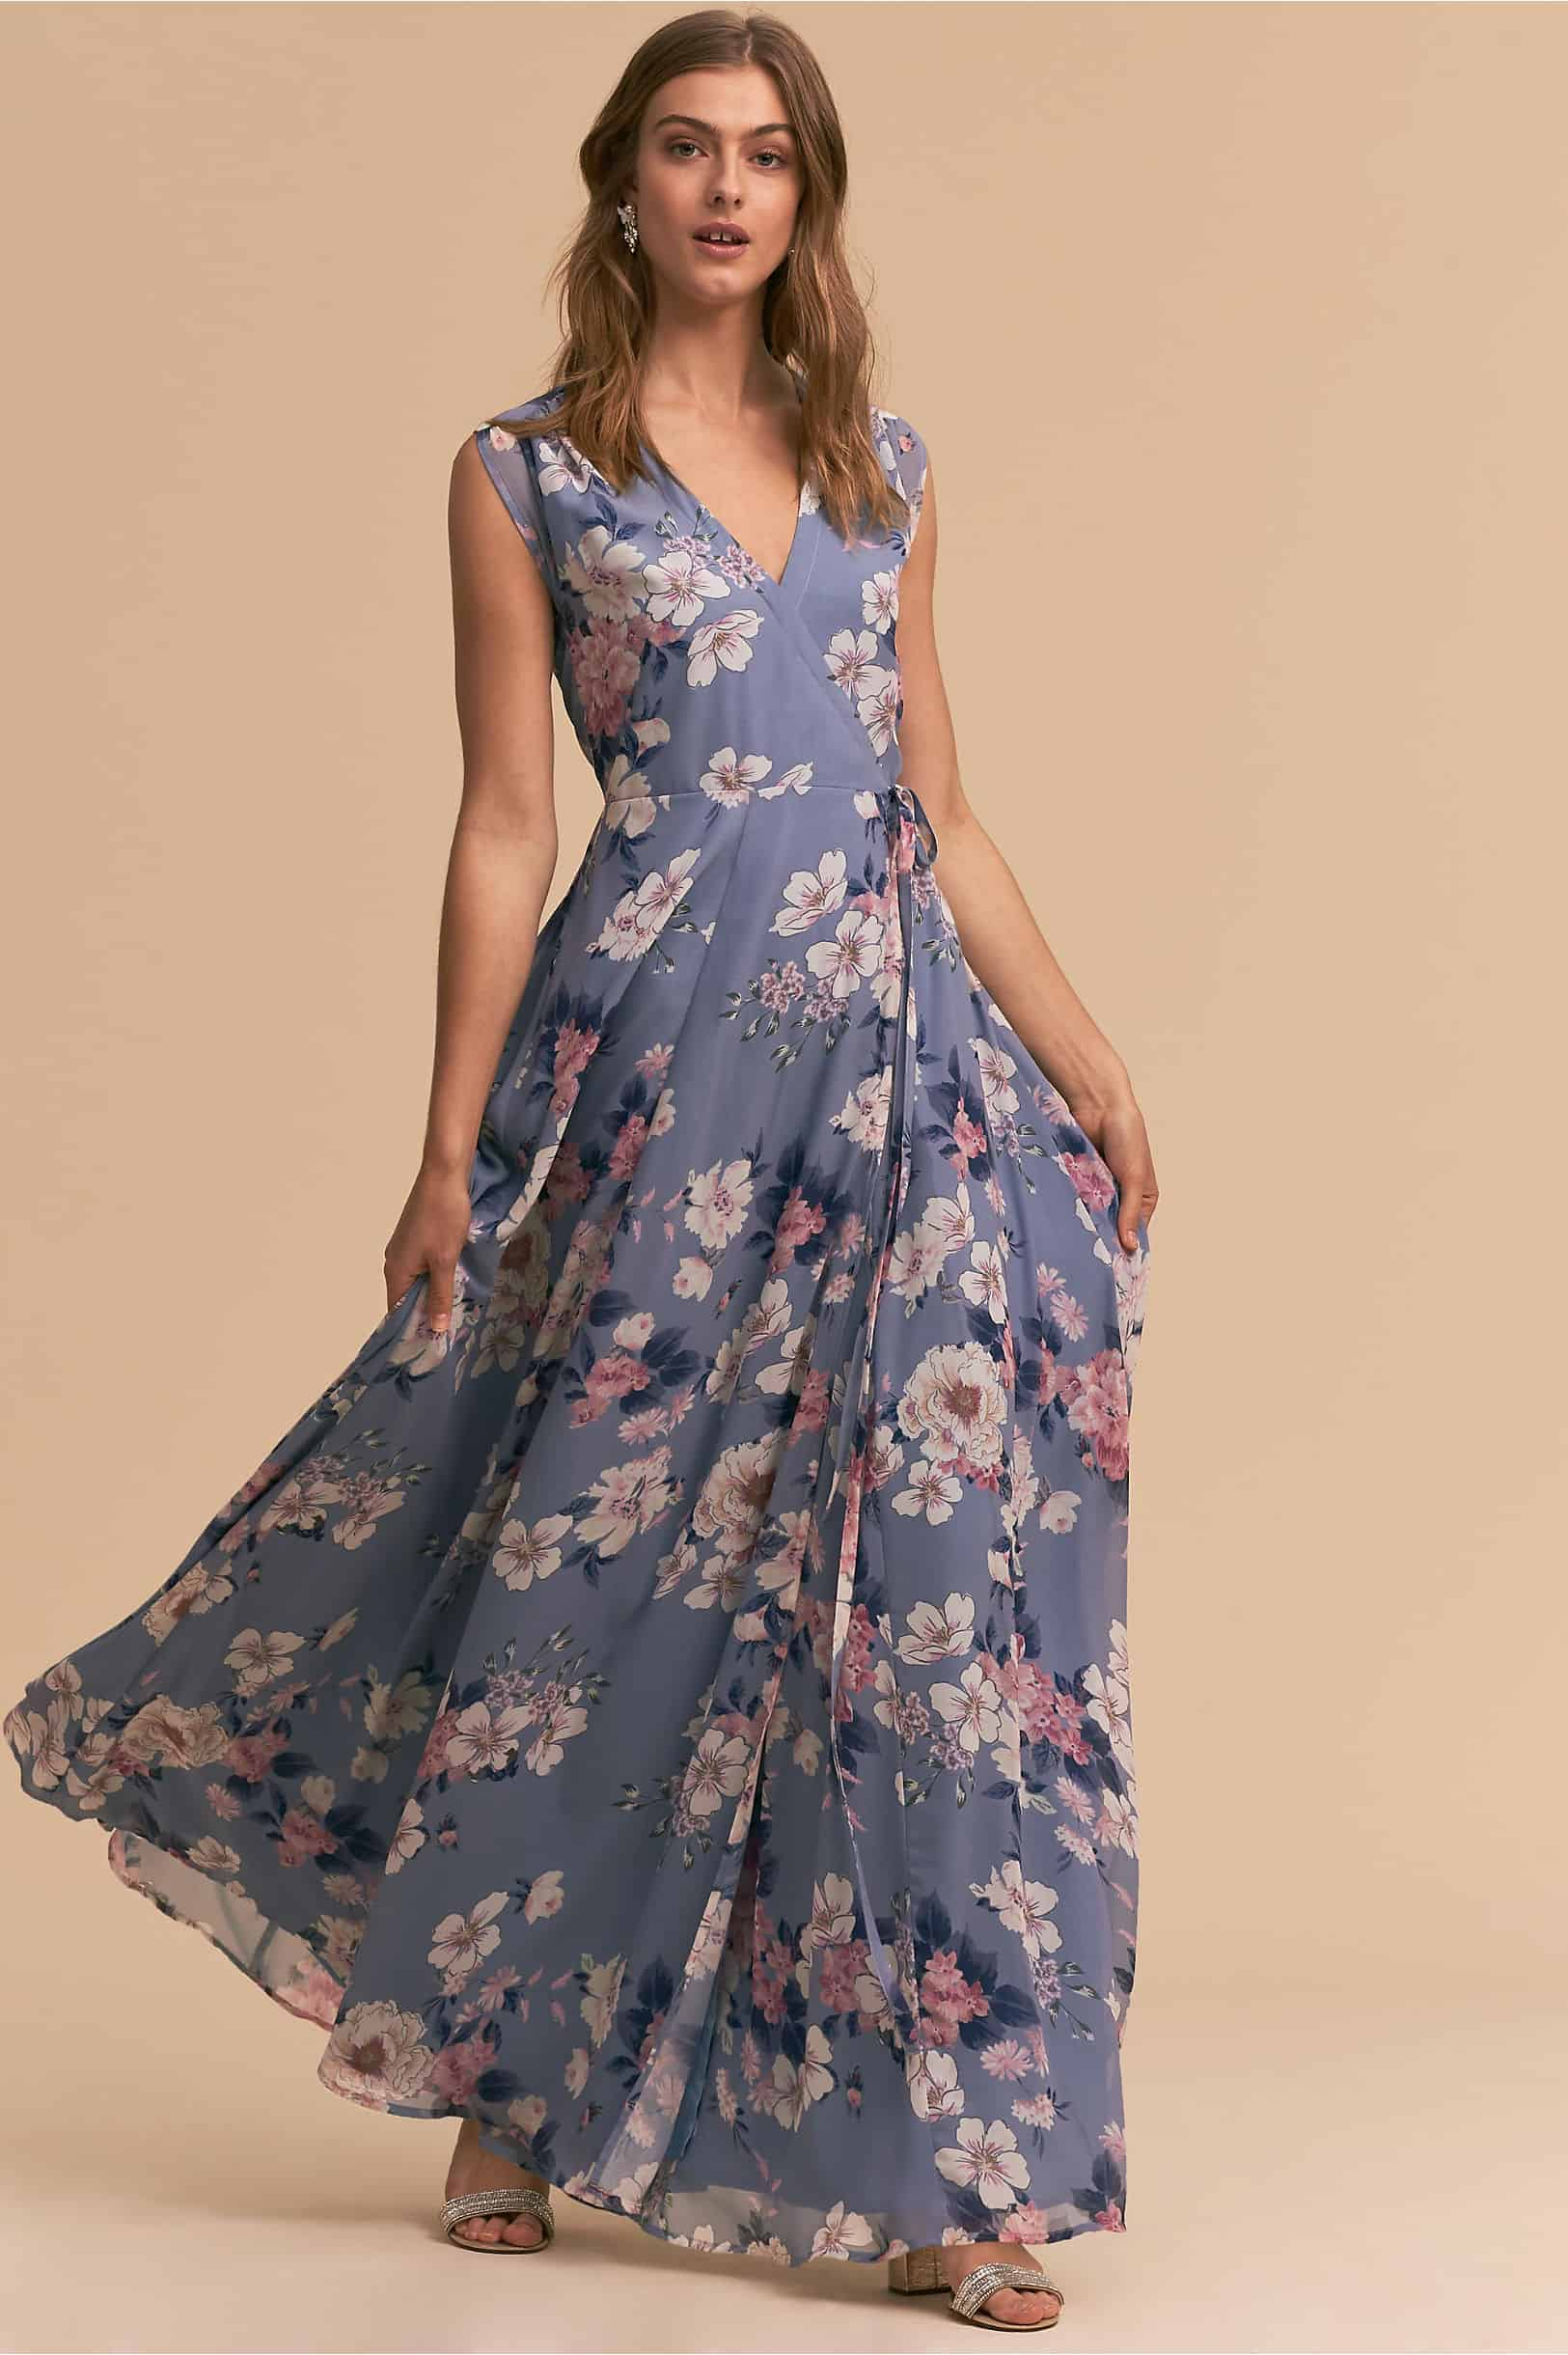 floral dresses for wedding what should a guest wear to a rustic wedding 4110